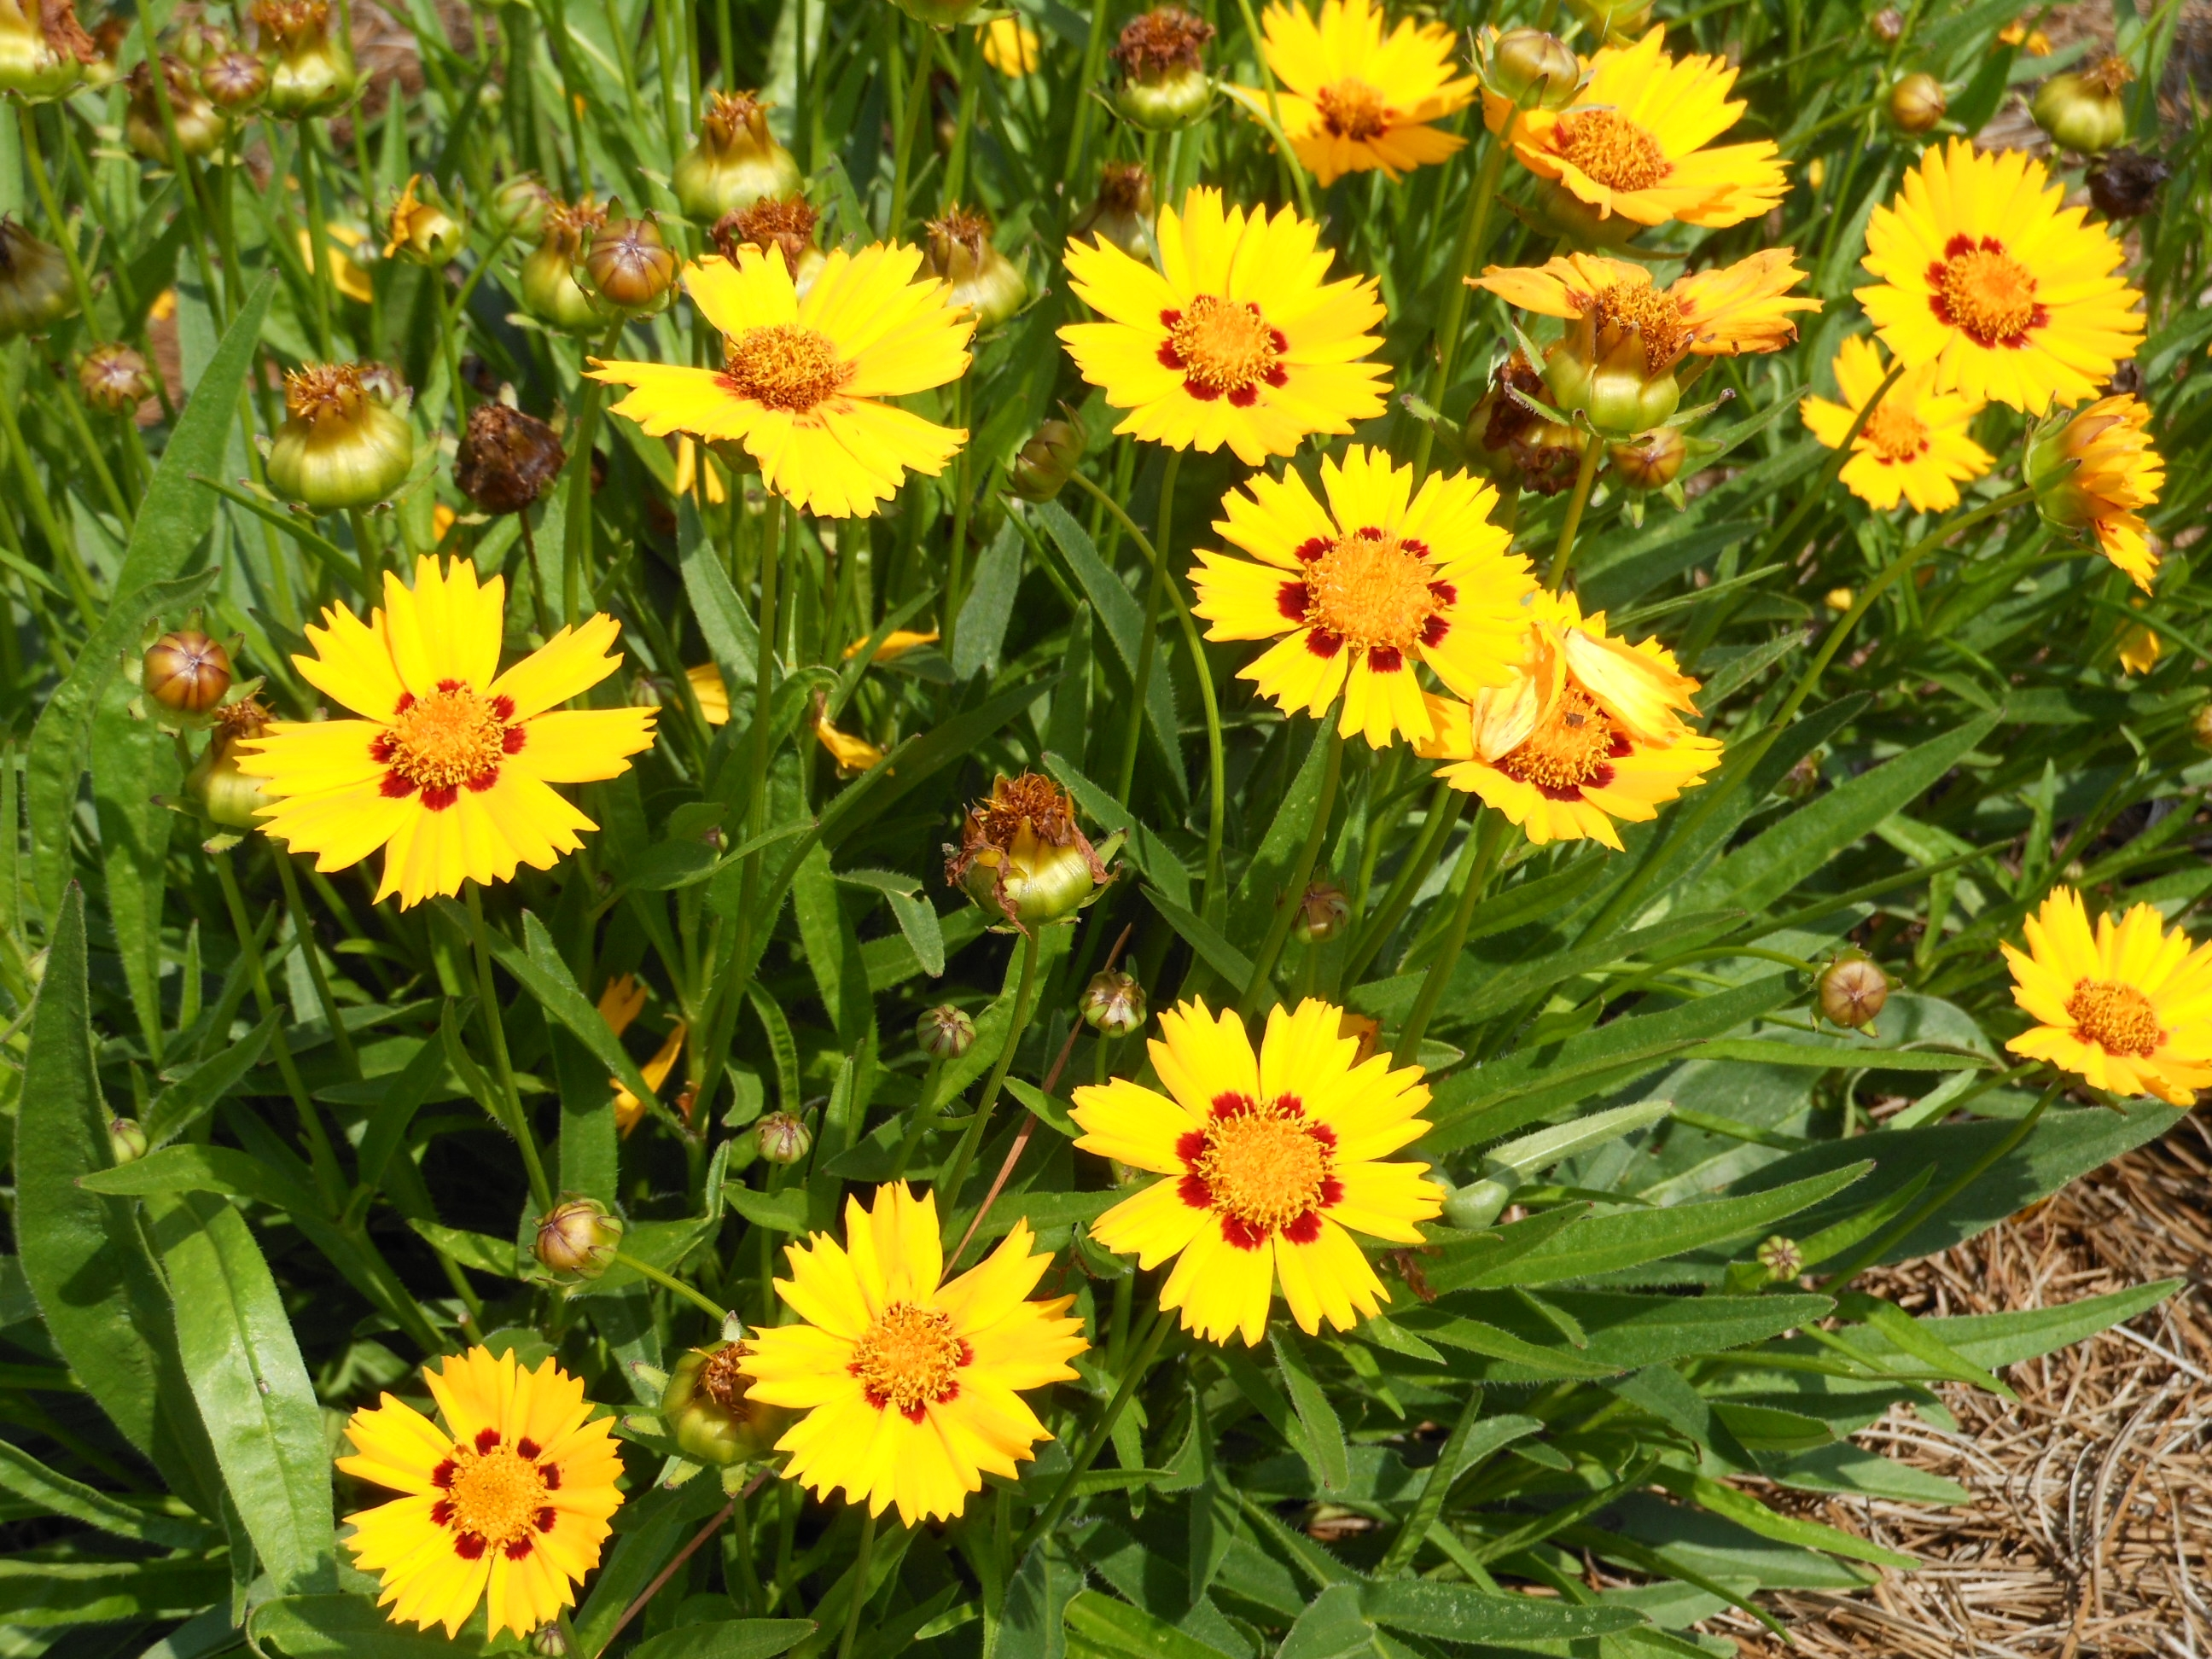 Sunfire coreopsis